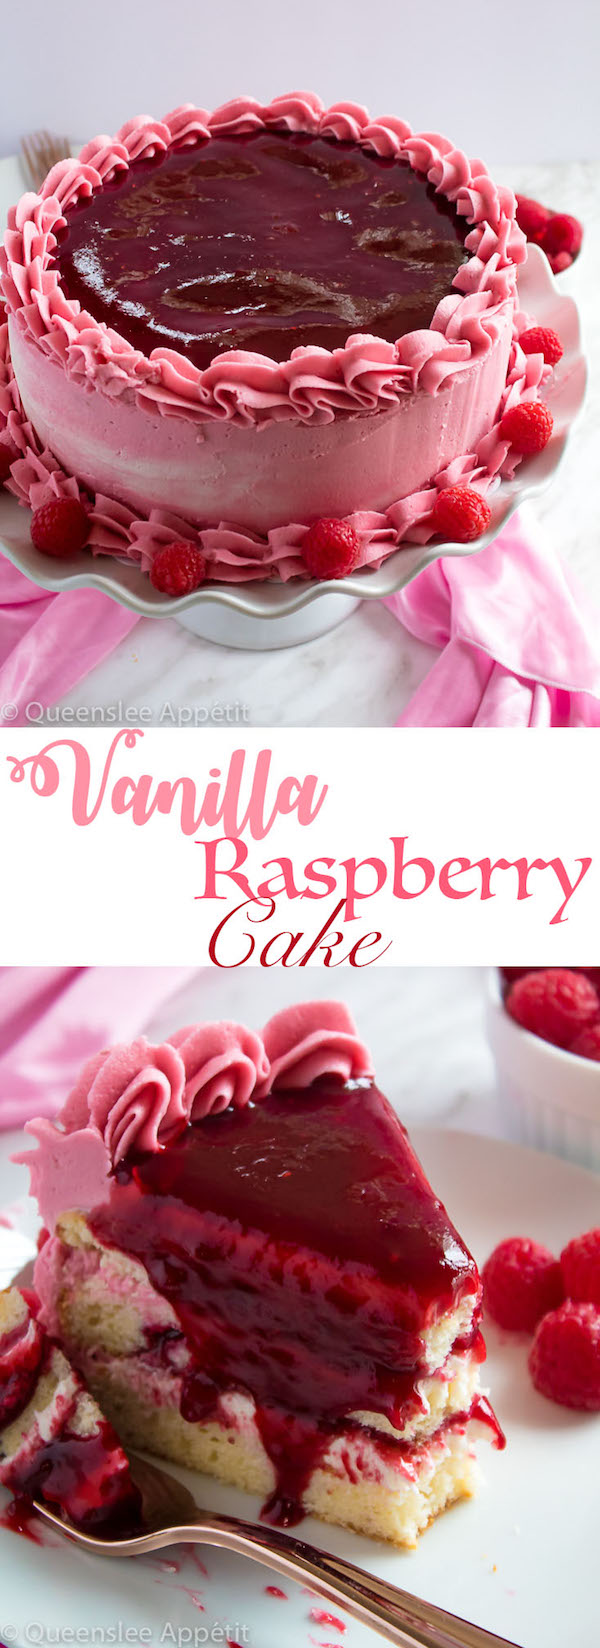 This Vanilla Raspberry Cake has moist and fluffy layers of vanilla cake. Between those layers is a vanilla buttercream with a raspberry sauce. Decorated with a raspberry and vanilla buttercream watercolour design, raspberry buttercream border, garnished with fresh raspberries and more raspberry sauce in the middle.